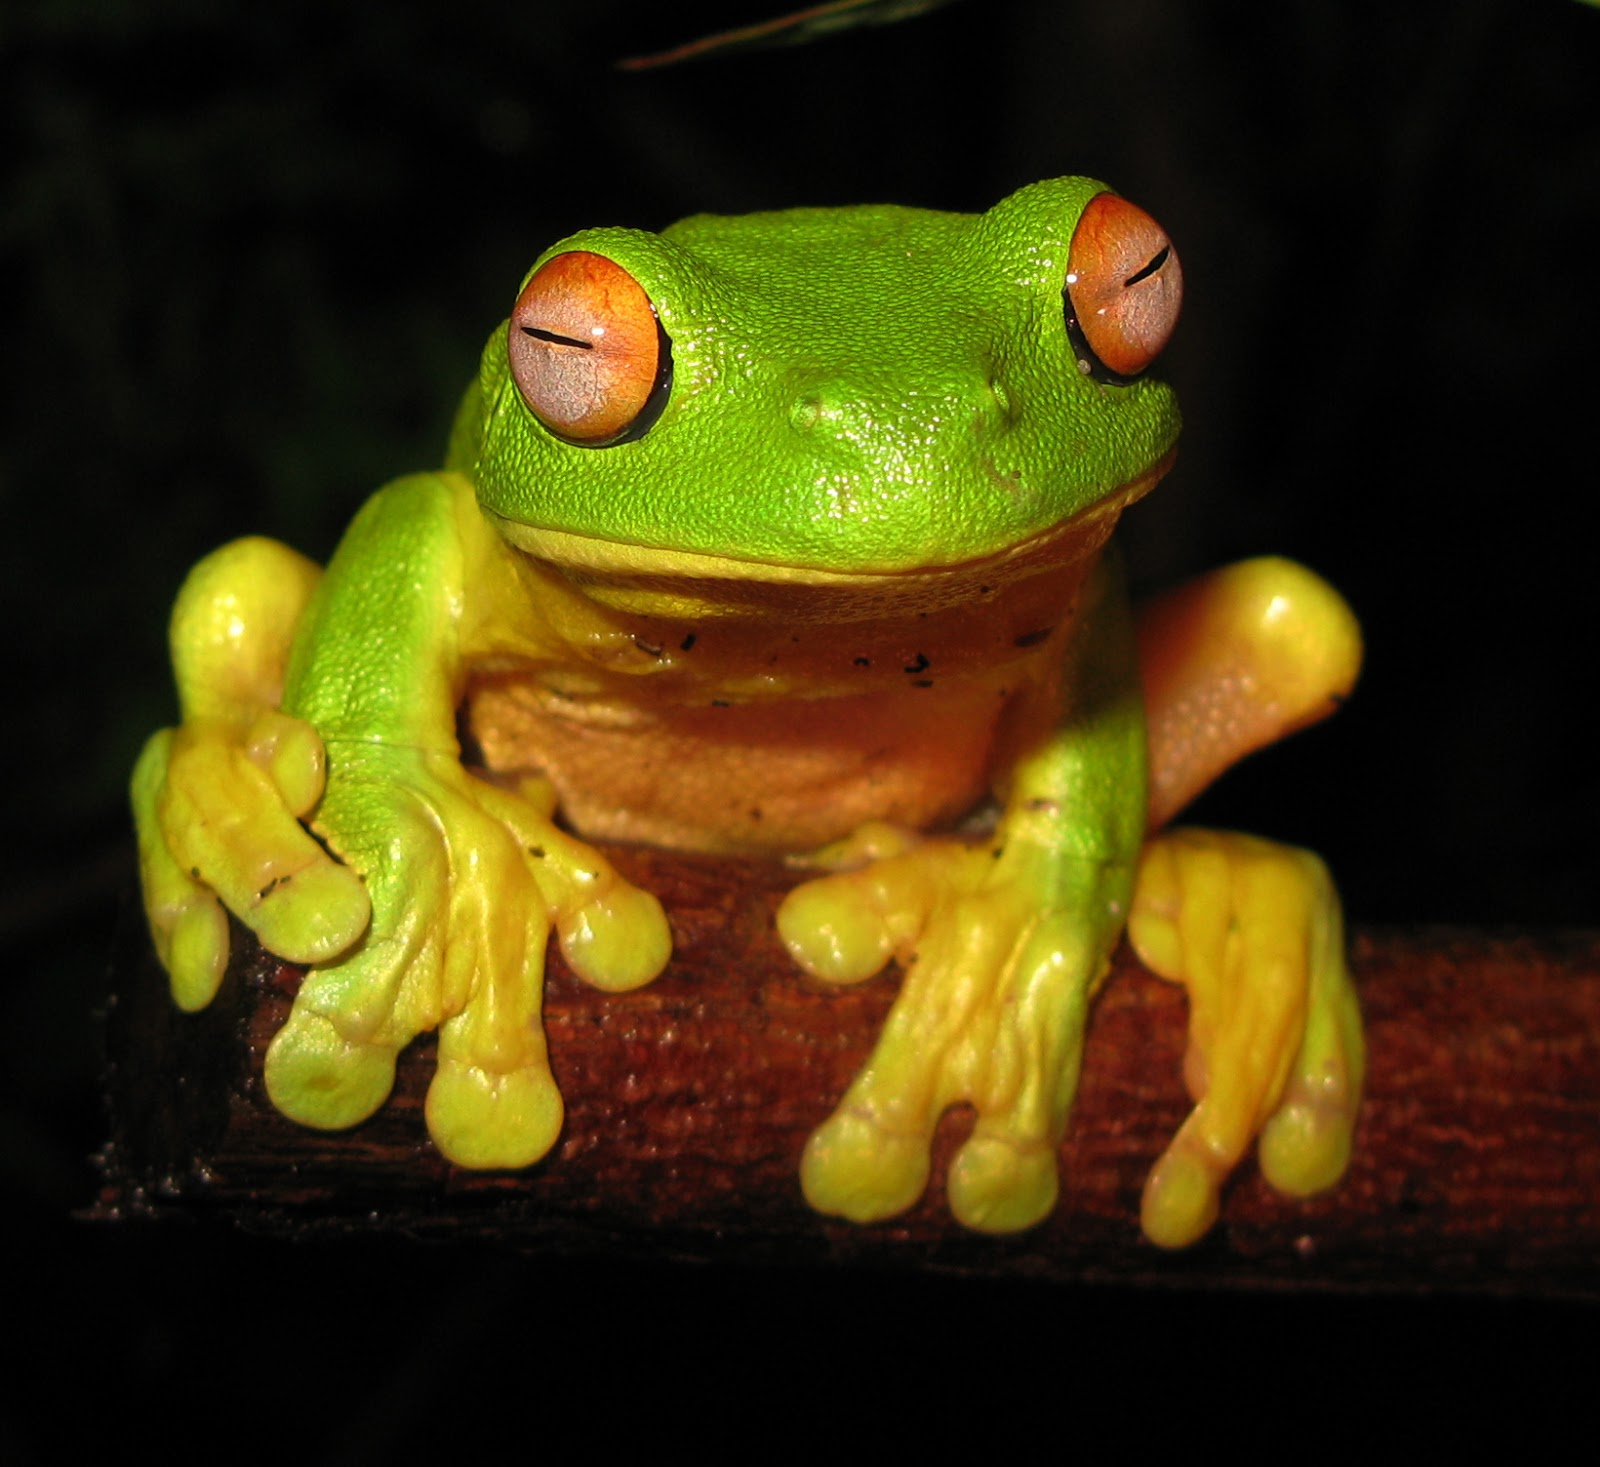 Amphibians: Red-eyed Tree Frog